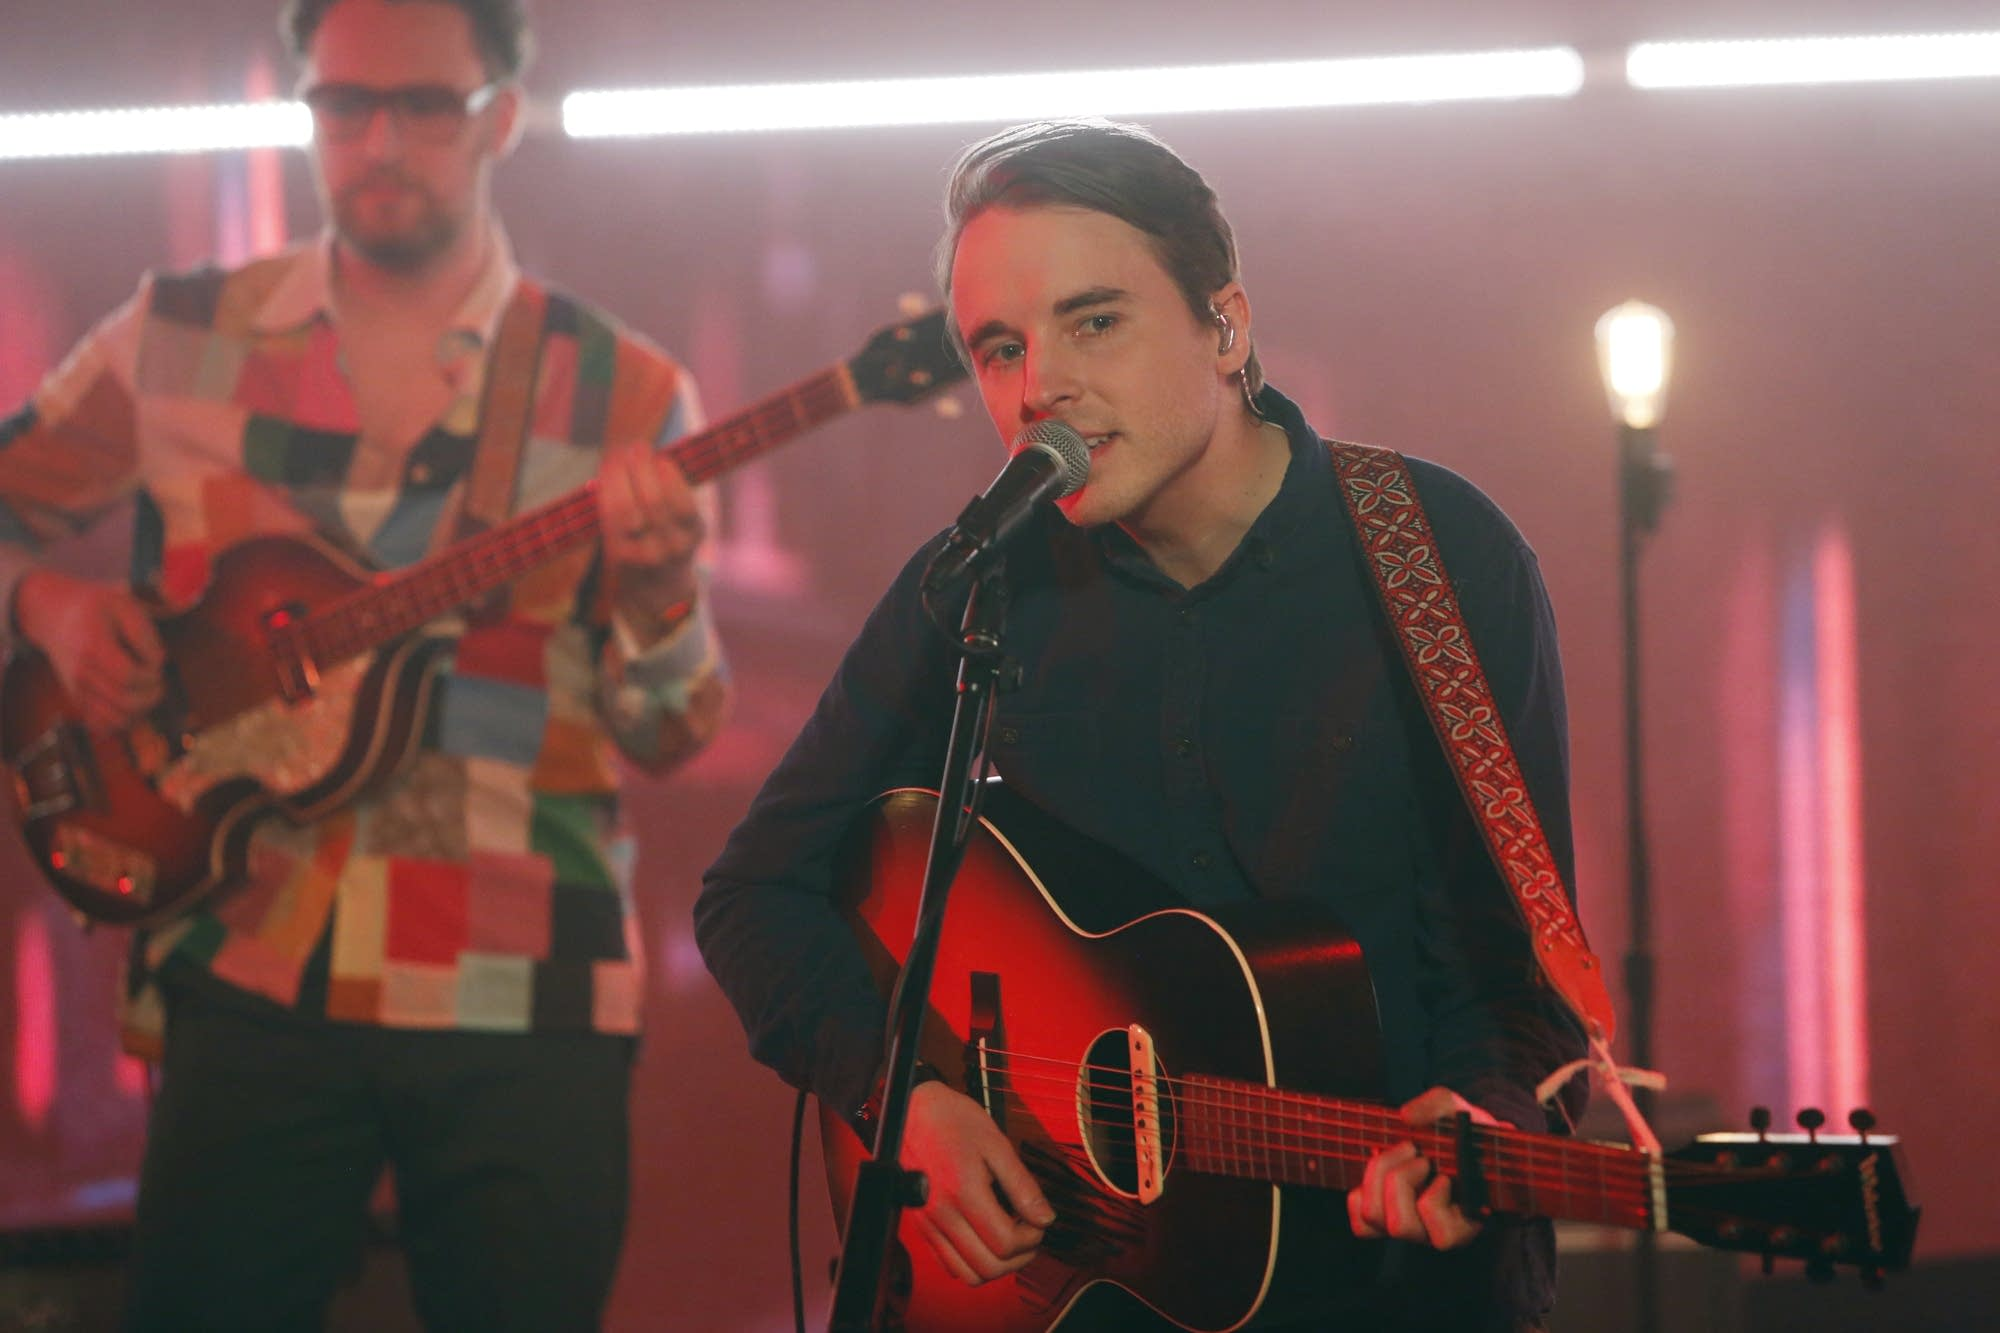 Andy Shauf performs on 'Jimmy Kimmel Live!' on ABC